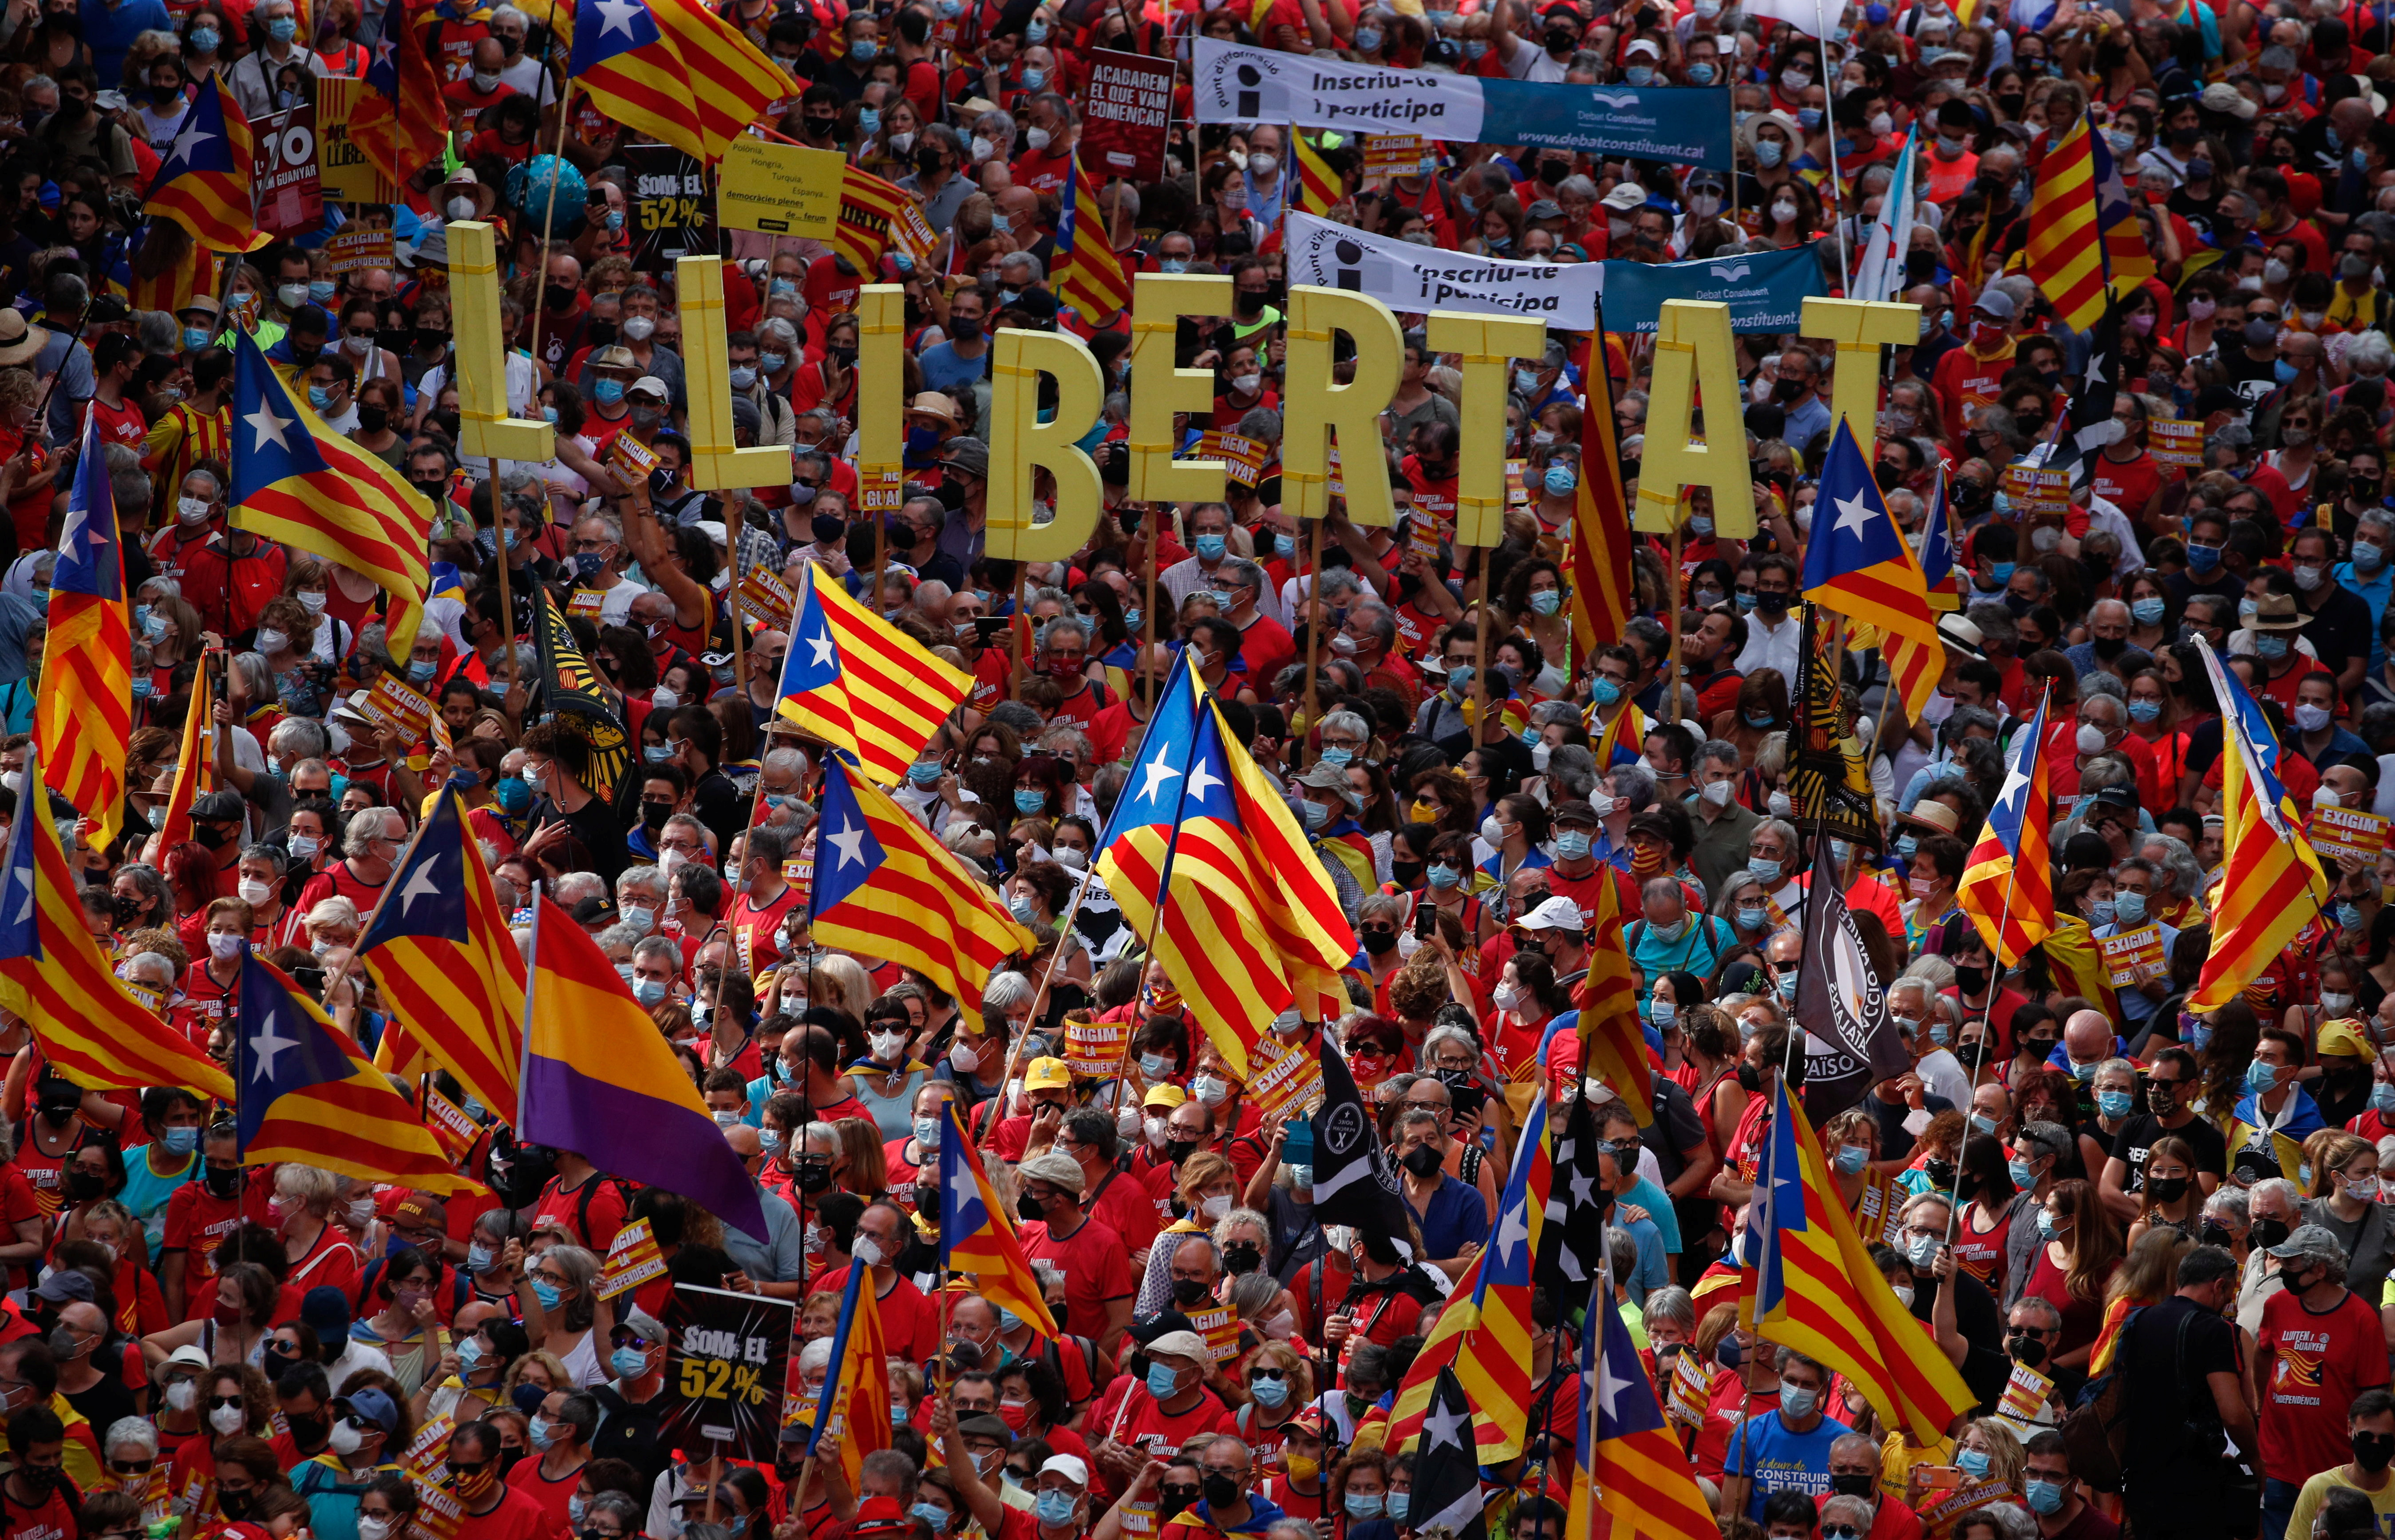 People hold up Estelada flags (Catalan separatist flag) during Catalonia's national day, 'La Diada', in Barcelona, Spain, September 11, 2021. The banner reads